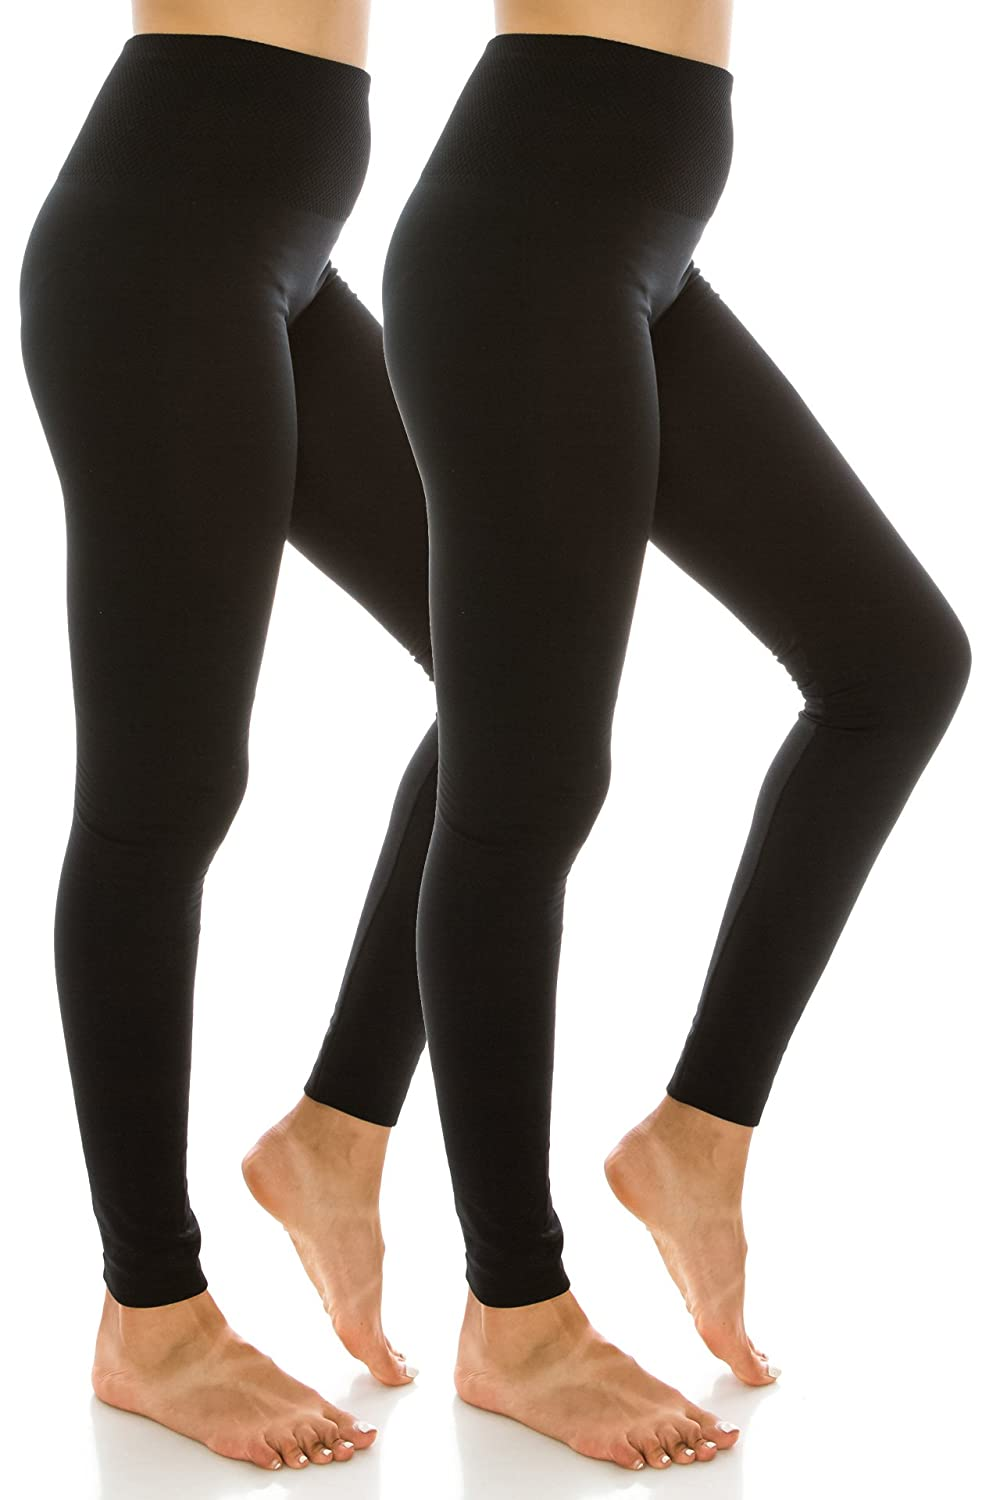 EttelLut High Waist Fleece Lined Leggings Single 2 Pack One Plus Size MP3238